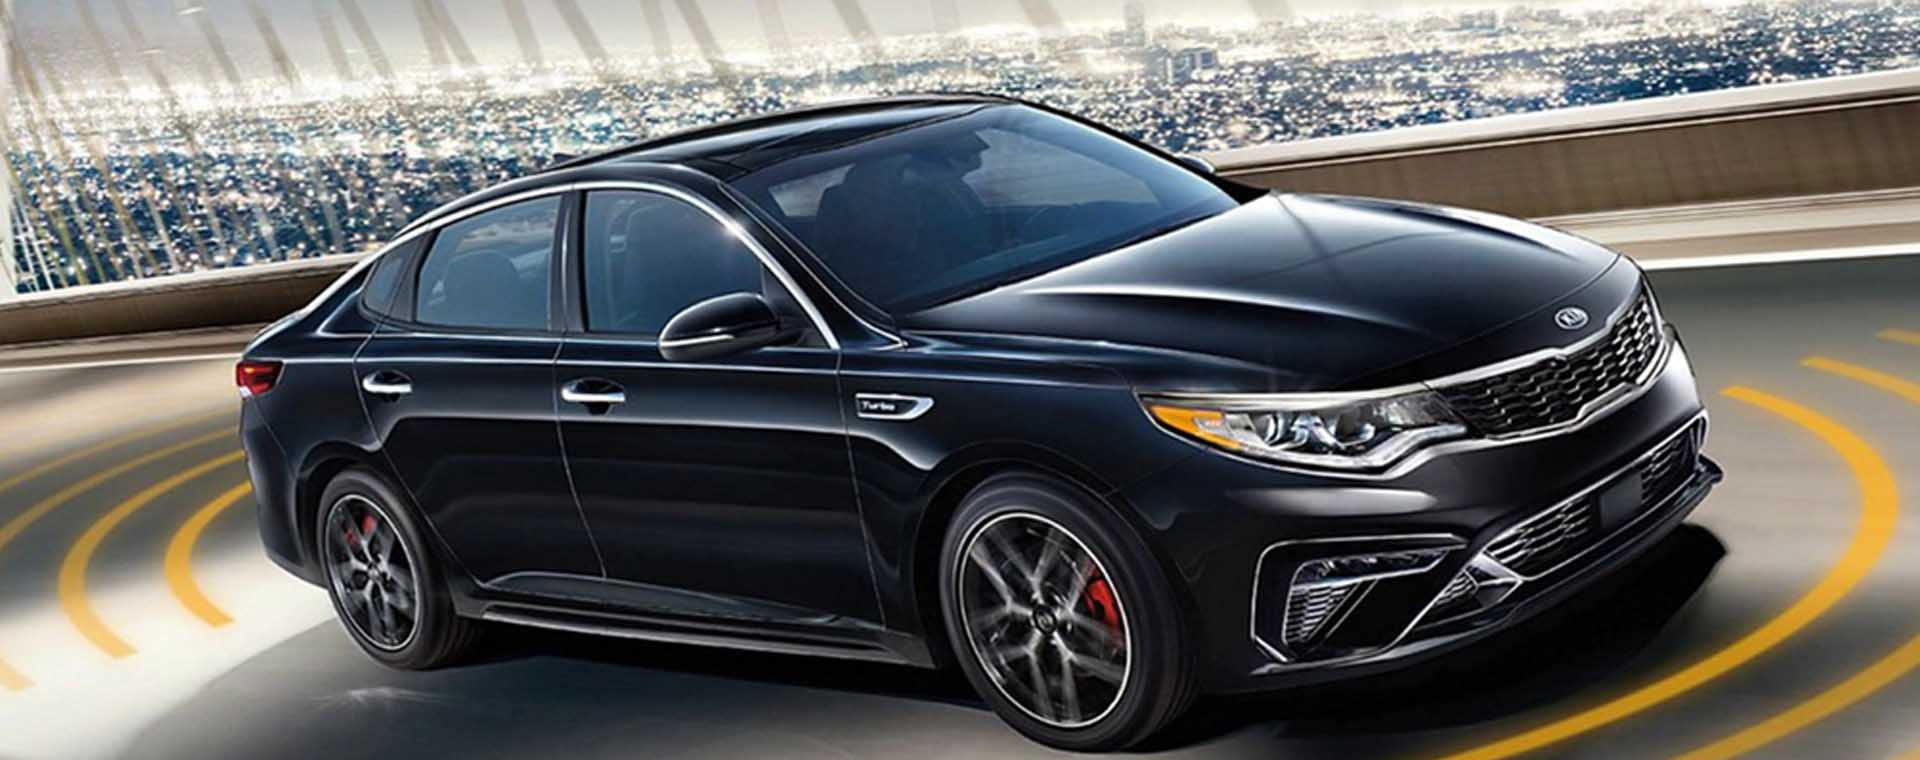 2020 Optima for sale in Kingsport, Tennessee